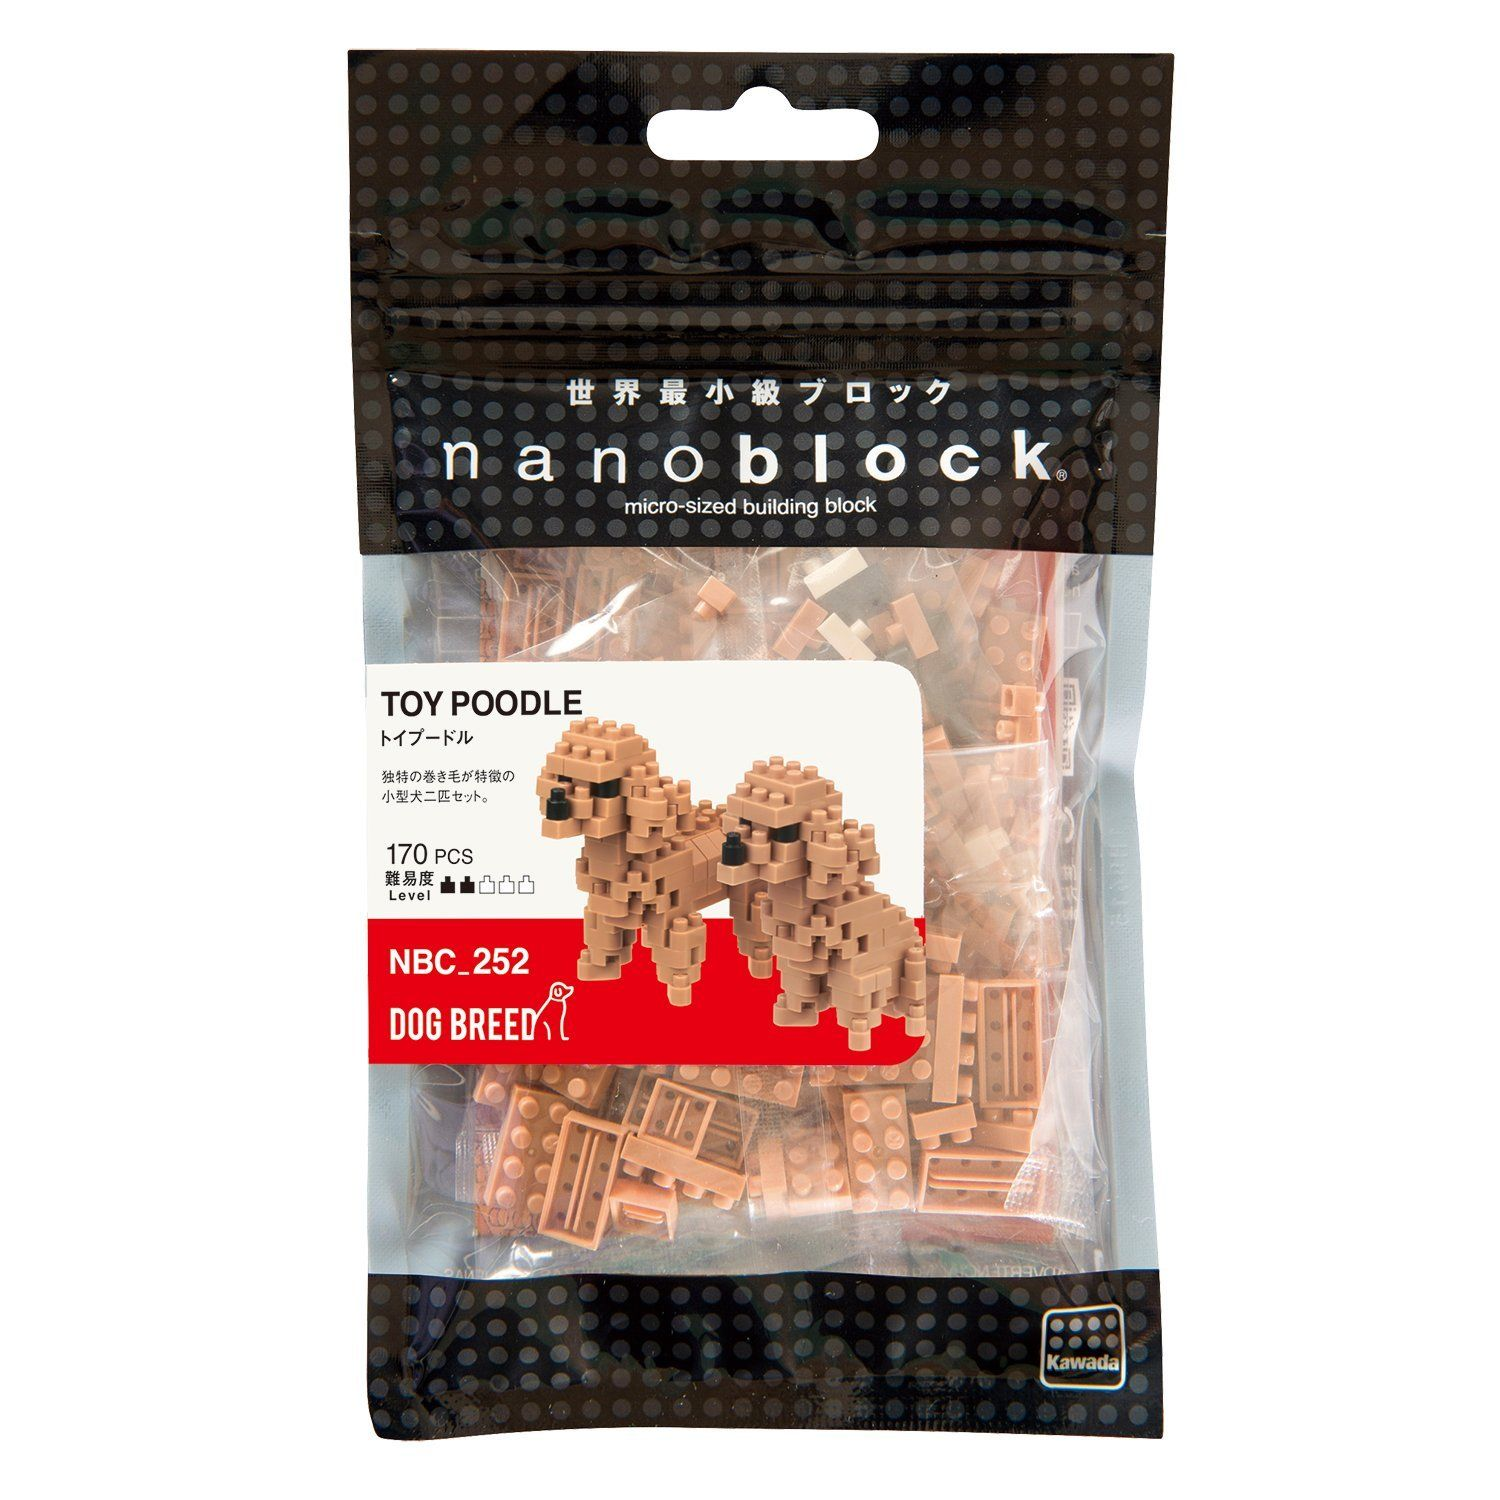 Toy Poodle Nanoblock Building Set by Nanoblock (NBC252) by nanoblock